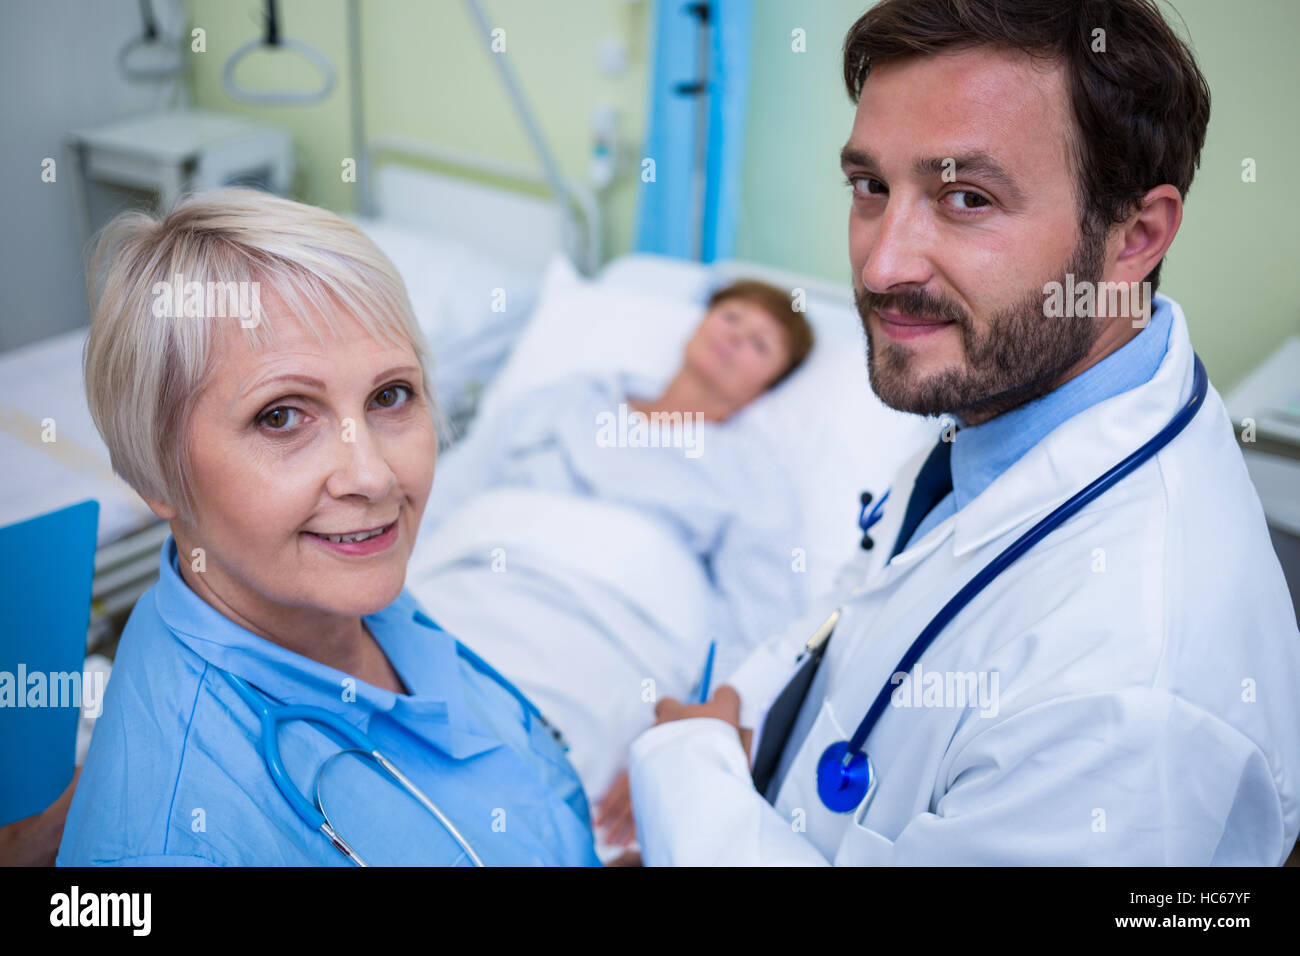 Portrait of doctor and nurse standing in hospital room - Stock Image